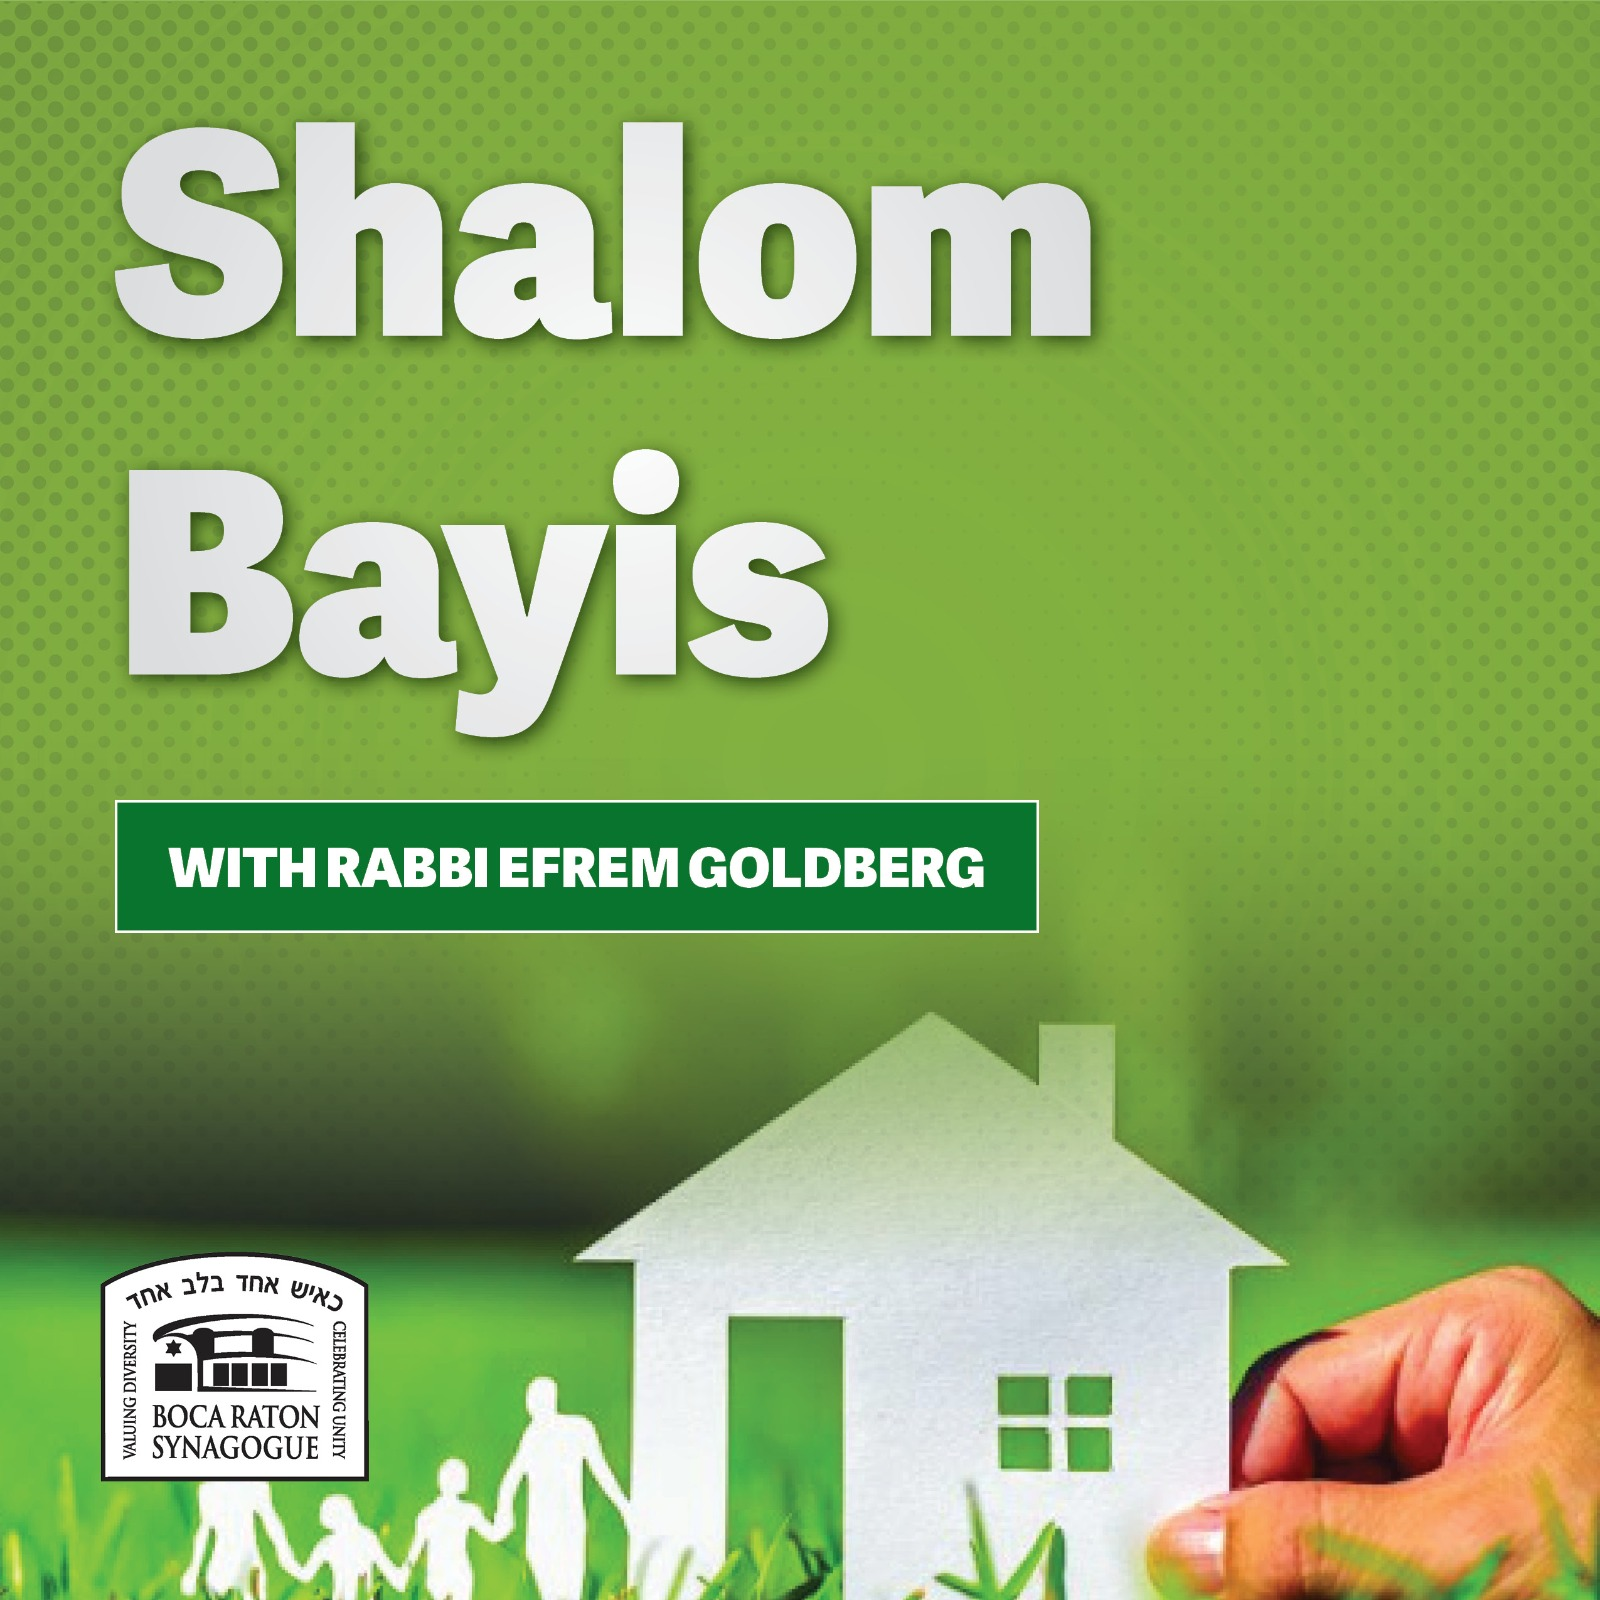 Shalom Bayis When You Can't Leave Your Bayis (For Husbands)